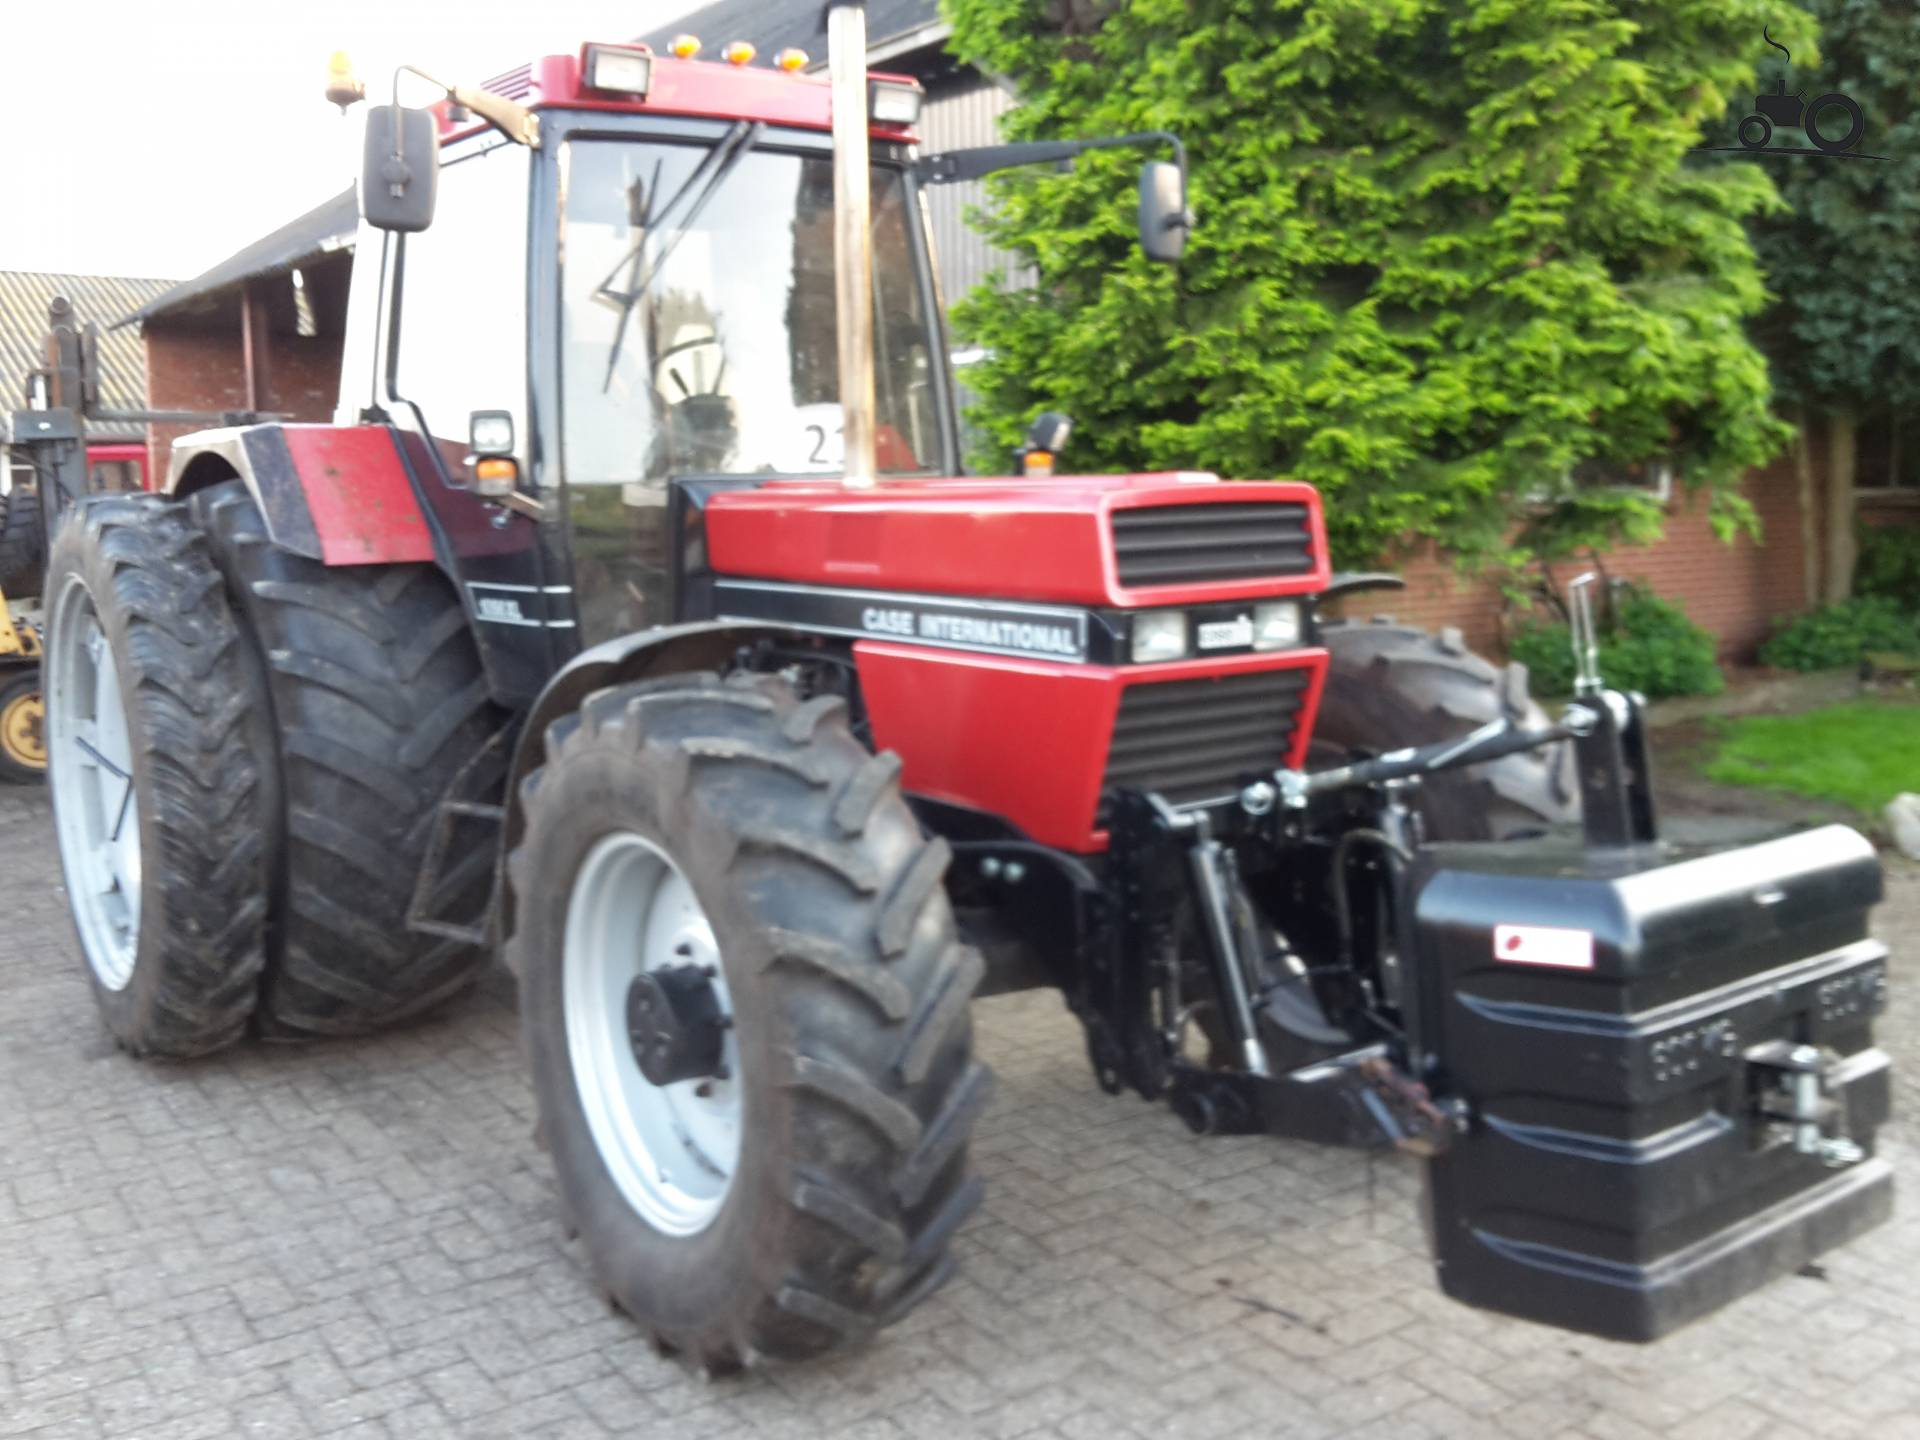 national tractor case study